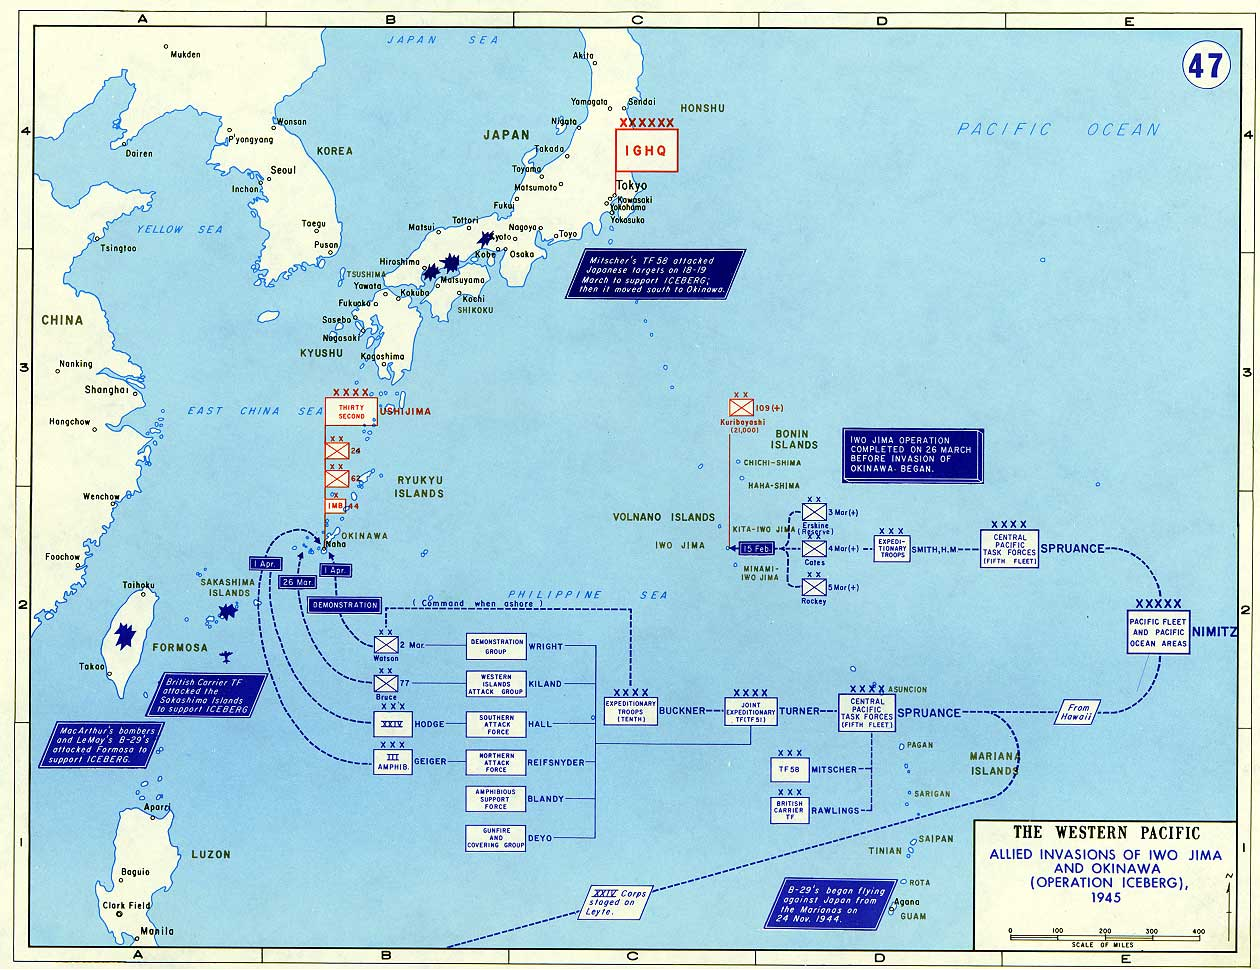 Ivo jima maps historical resources about the second world war invasion of iwo jima and okinawa 1945 gumiabroncs Choice Image